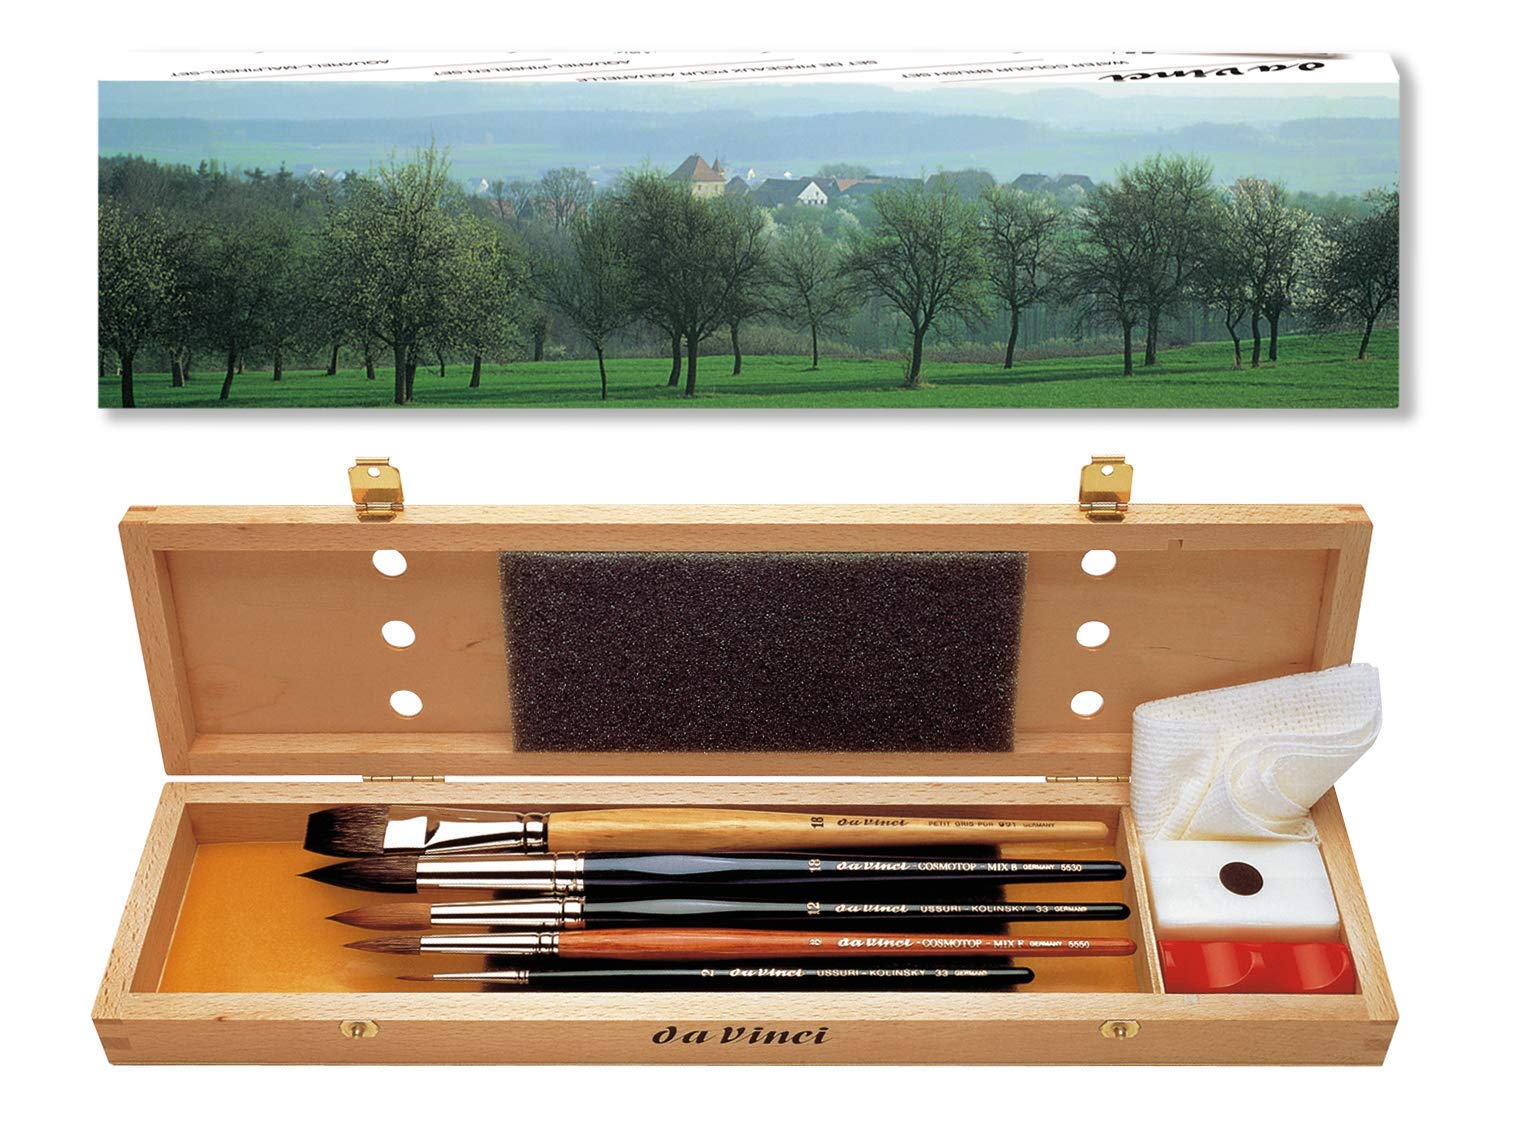 da Vinci Watercolor Series 5240 Deluxe Paint Brush Set, Natural Hair and Synthetic with Wooden Storage Box and Brush Soap, Multiple Sizes, 5 Brushes (Series 36, 991, 5530, 5550) by da Vinci Brushes